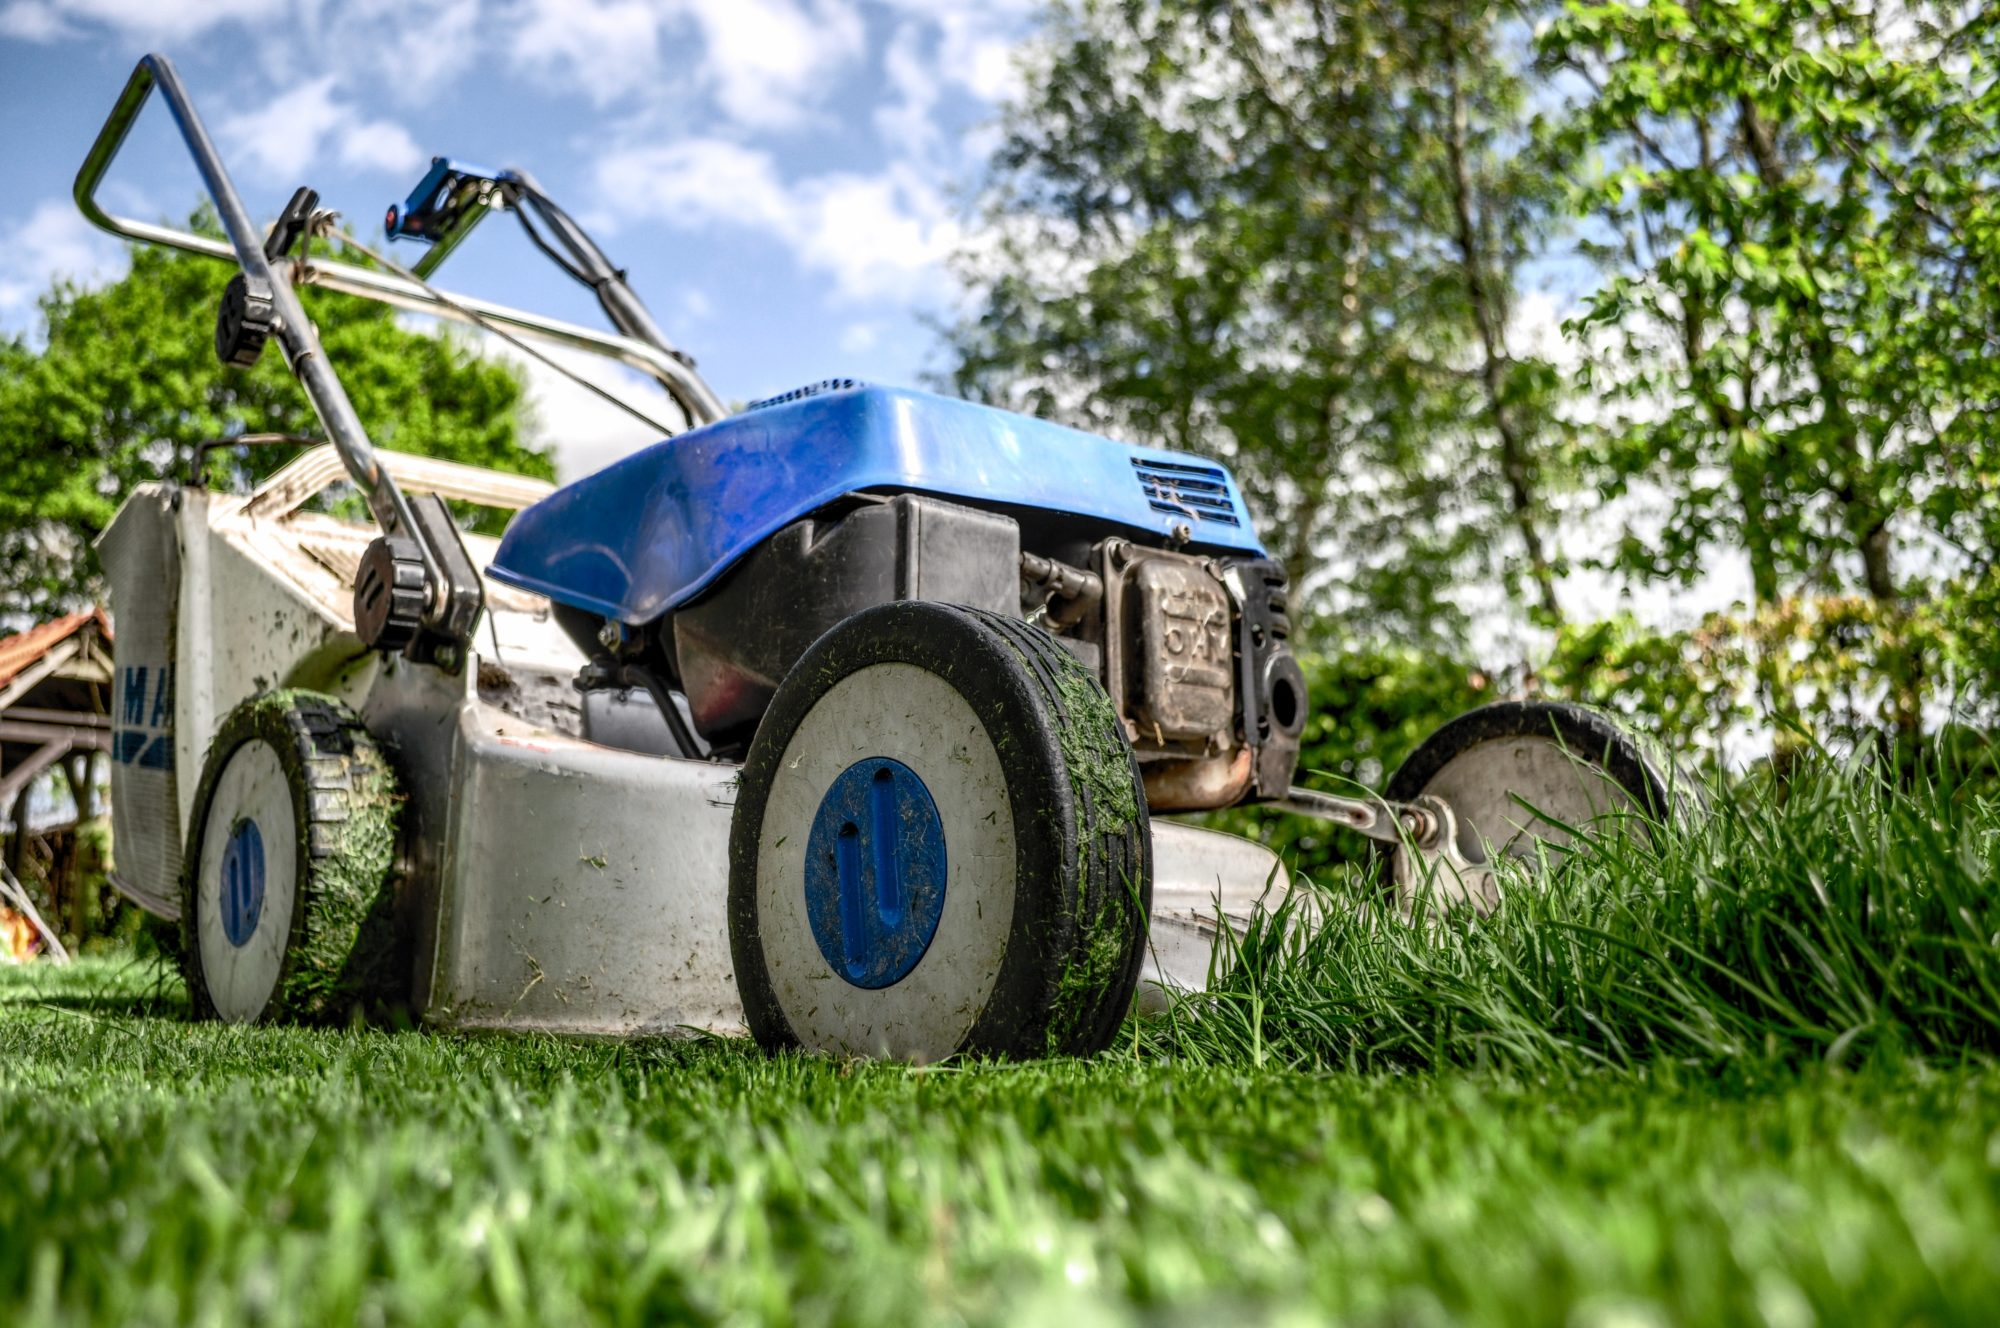 Check out the early spring lawn care tips for your Maryland home.